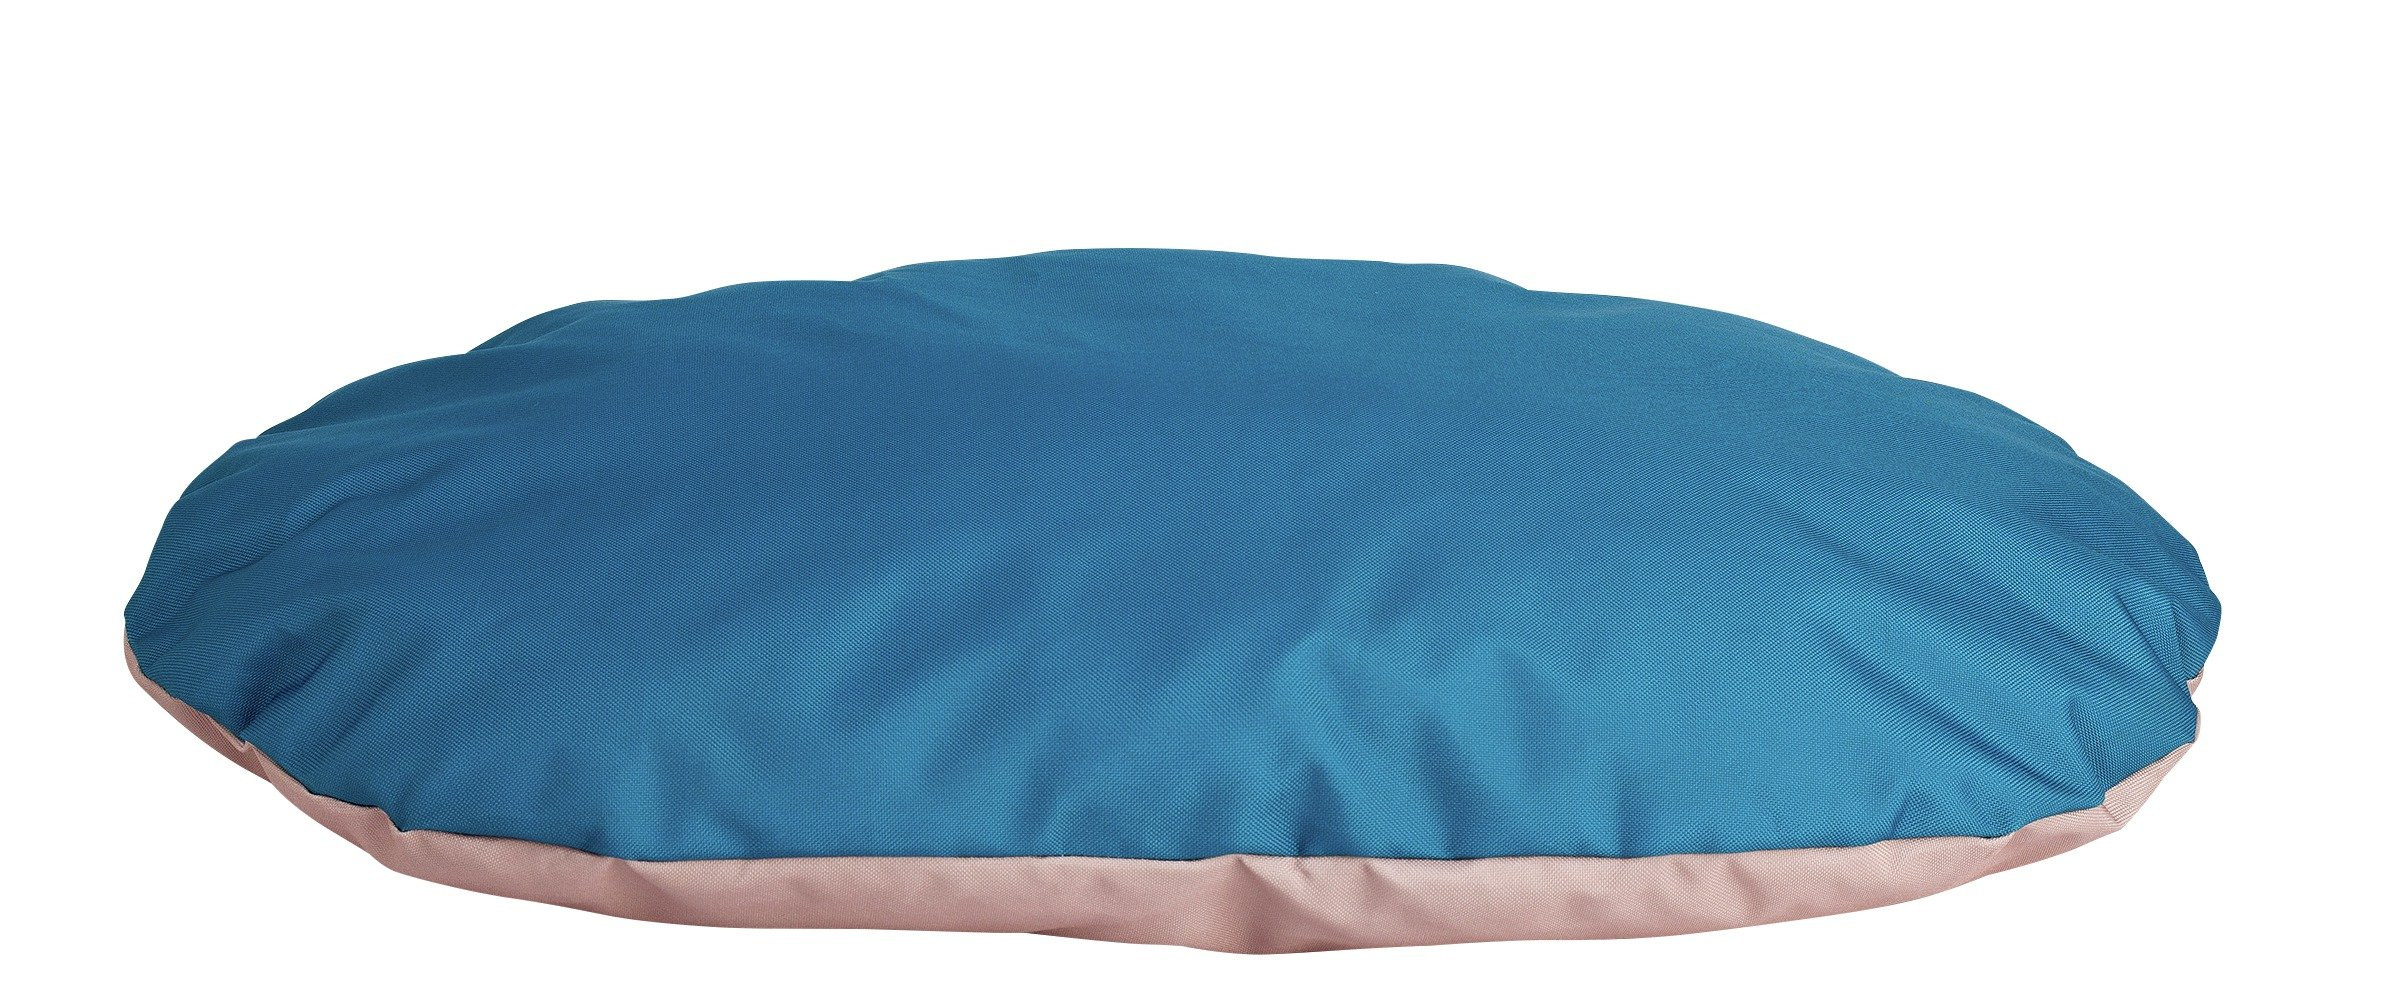 Image of Oxford Outdoor Large Pet Cushion